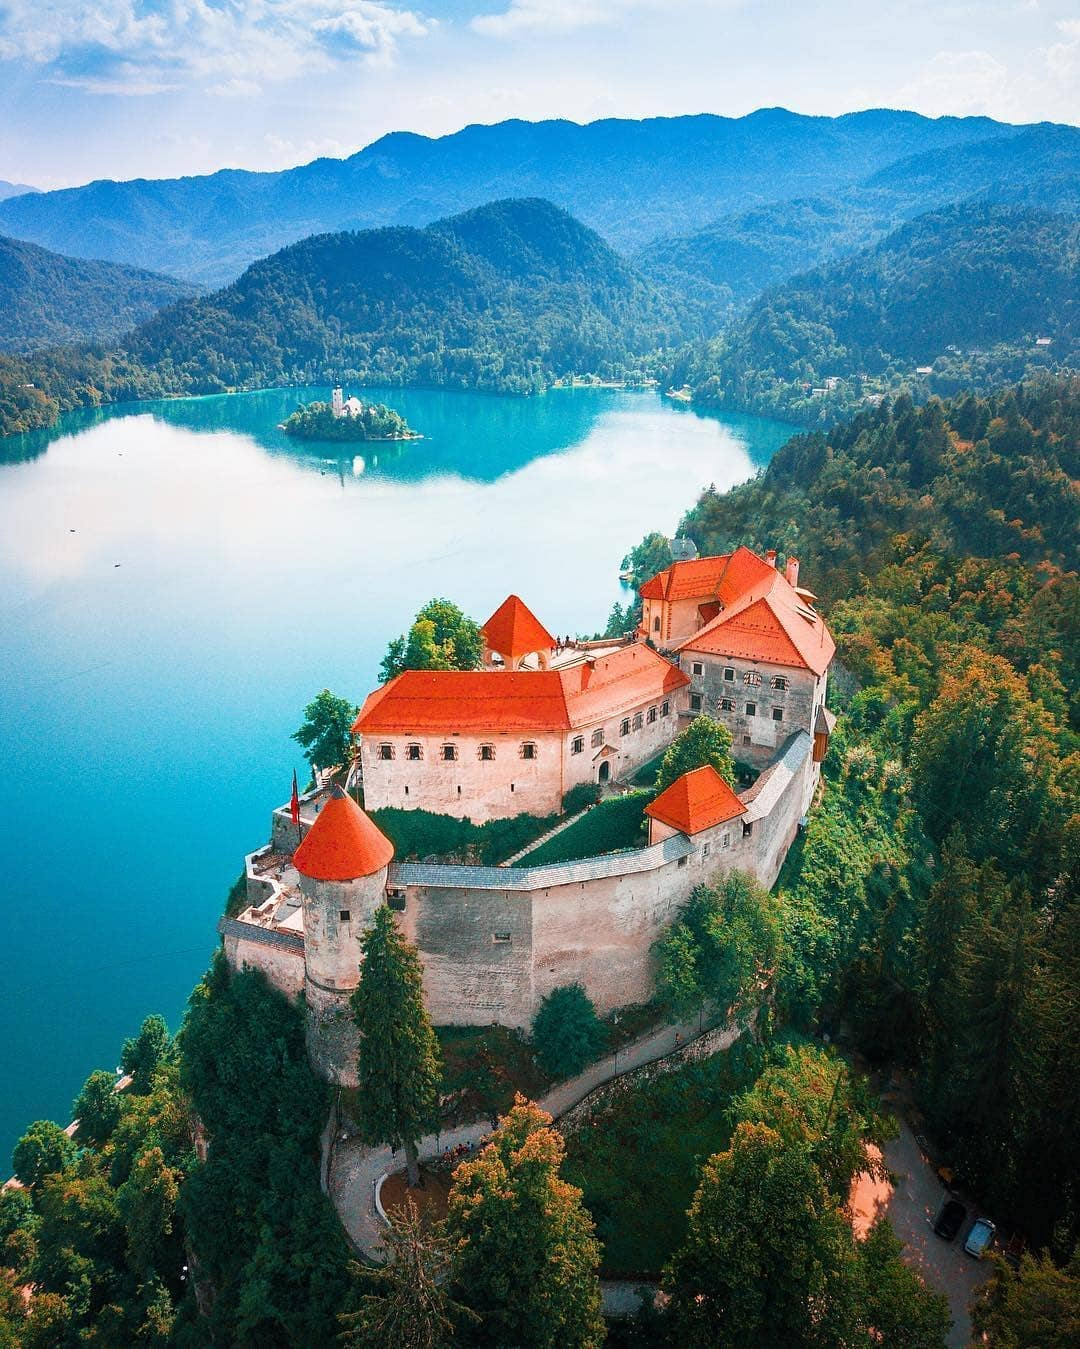 Different perspective on lake Bled from hot air baloon. Mighty Bled castle in front with legendary island in the background.   Thanks @mblockk for sharing your photo with #ifeelsLOVEnia.